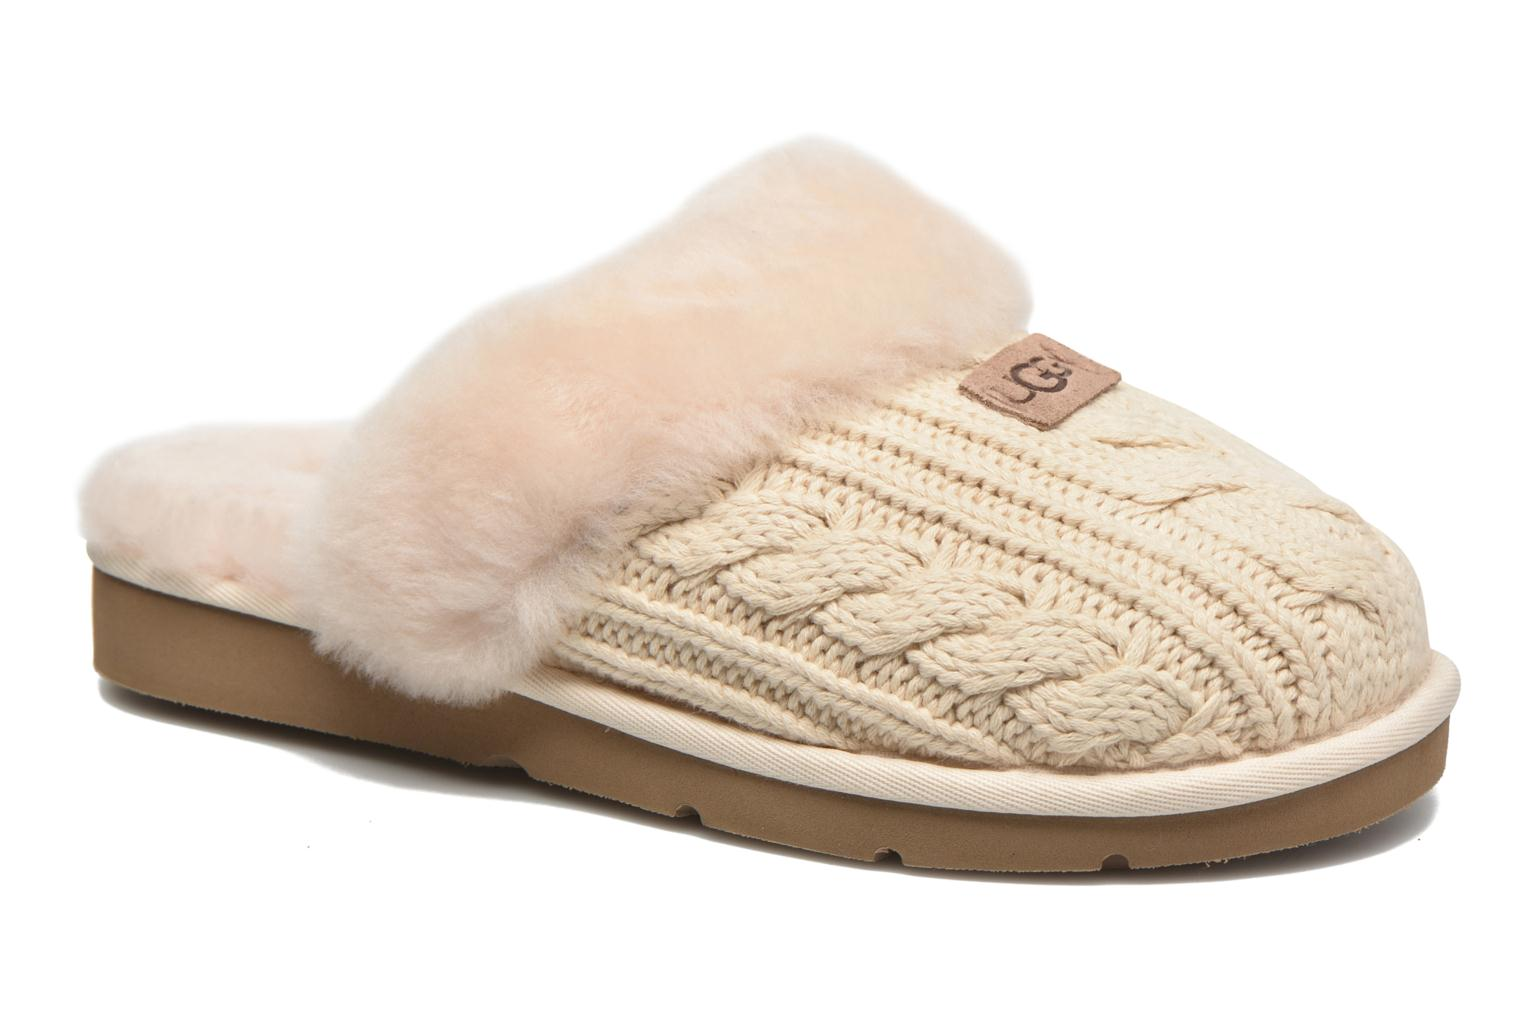 Ugg W Cozy Knit Cable White Slippers Chez Sarenza 269957